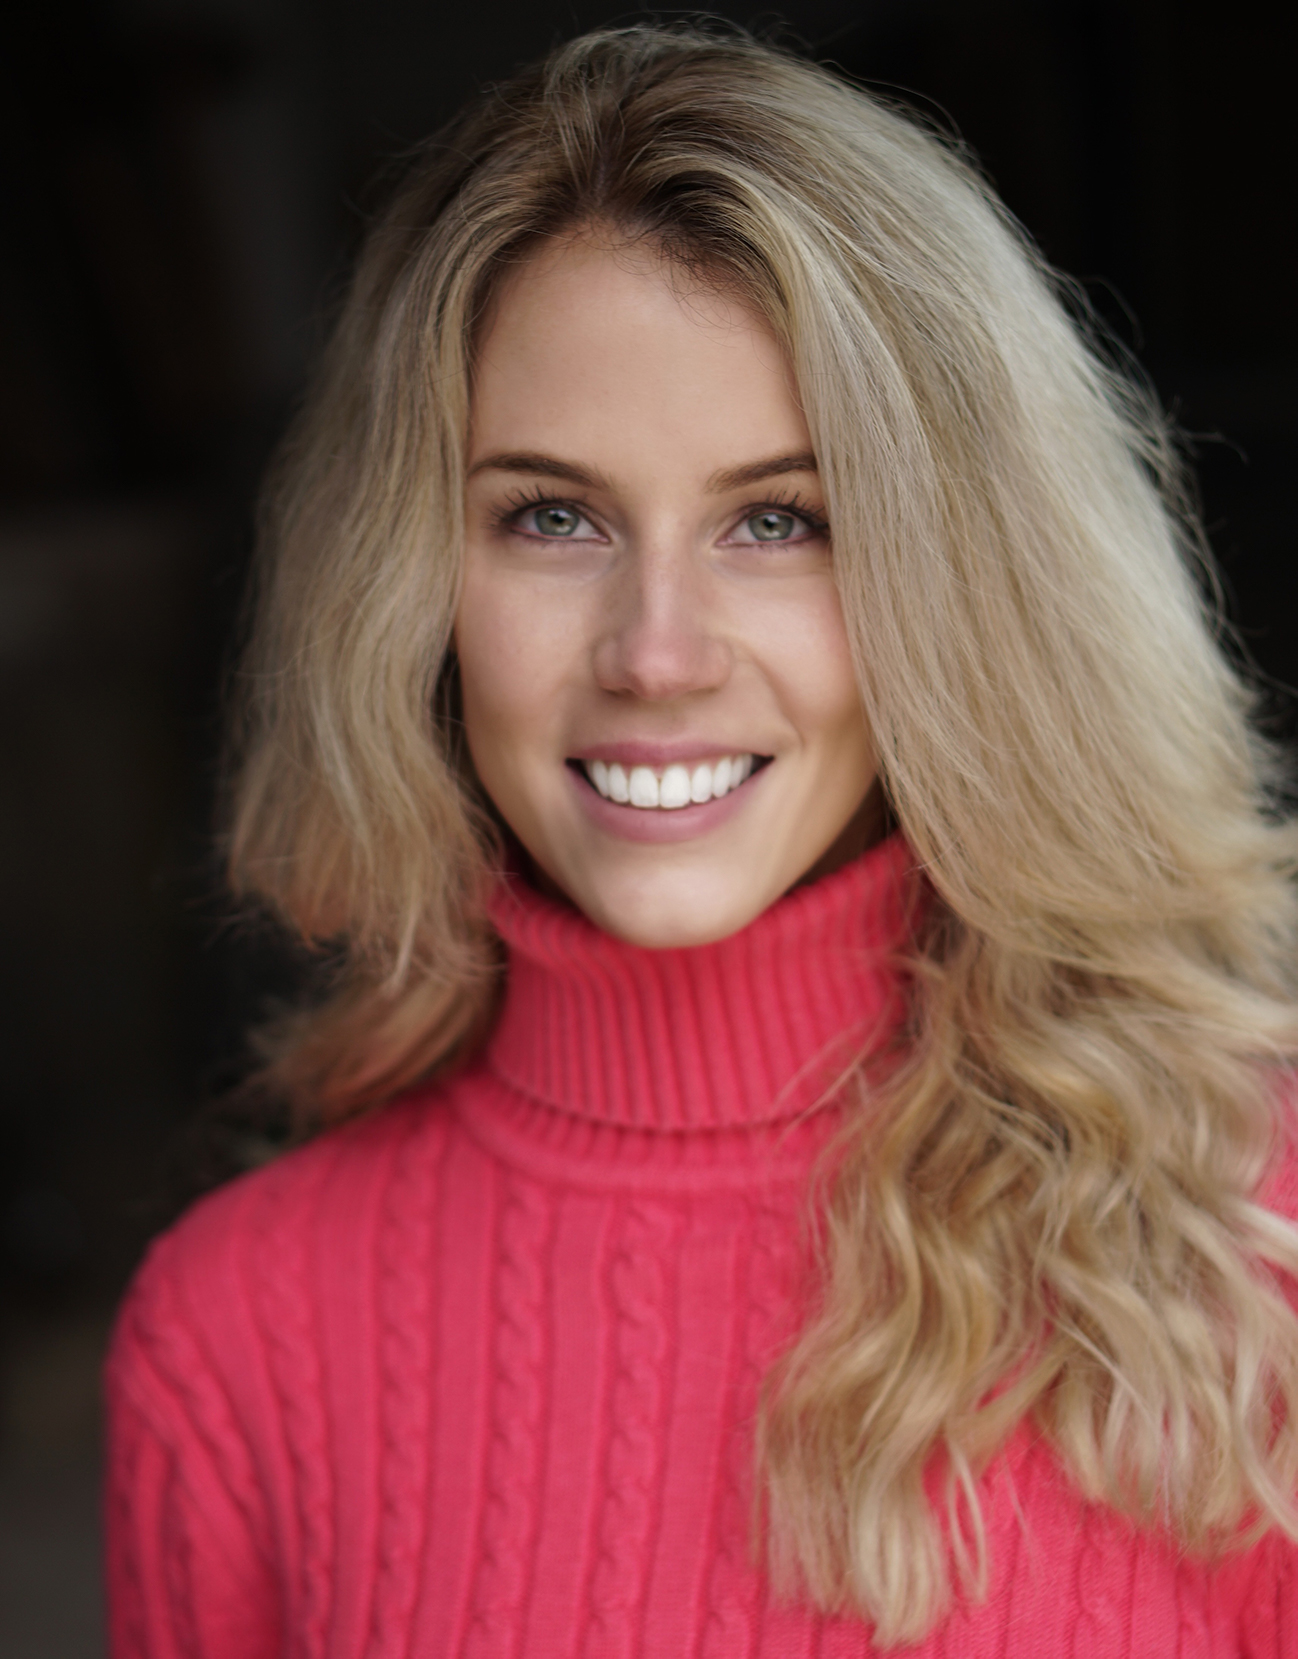 Headshot of Haley-Kate Daykin.